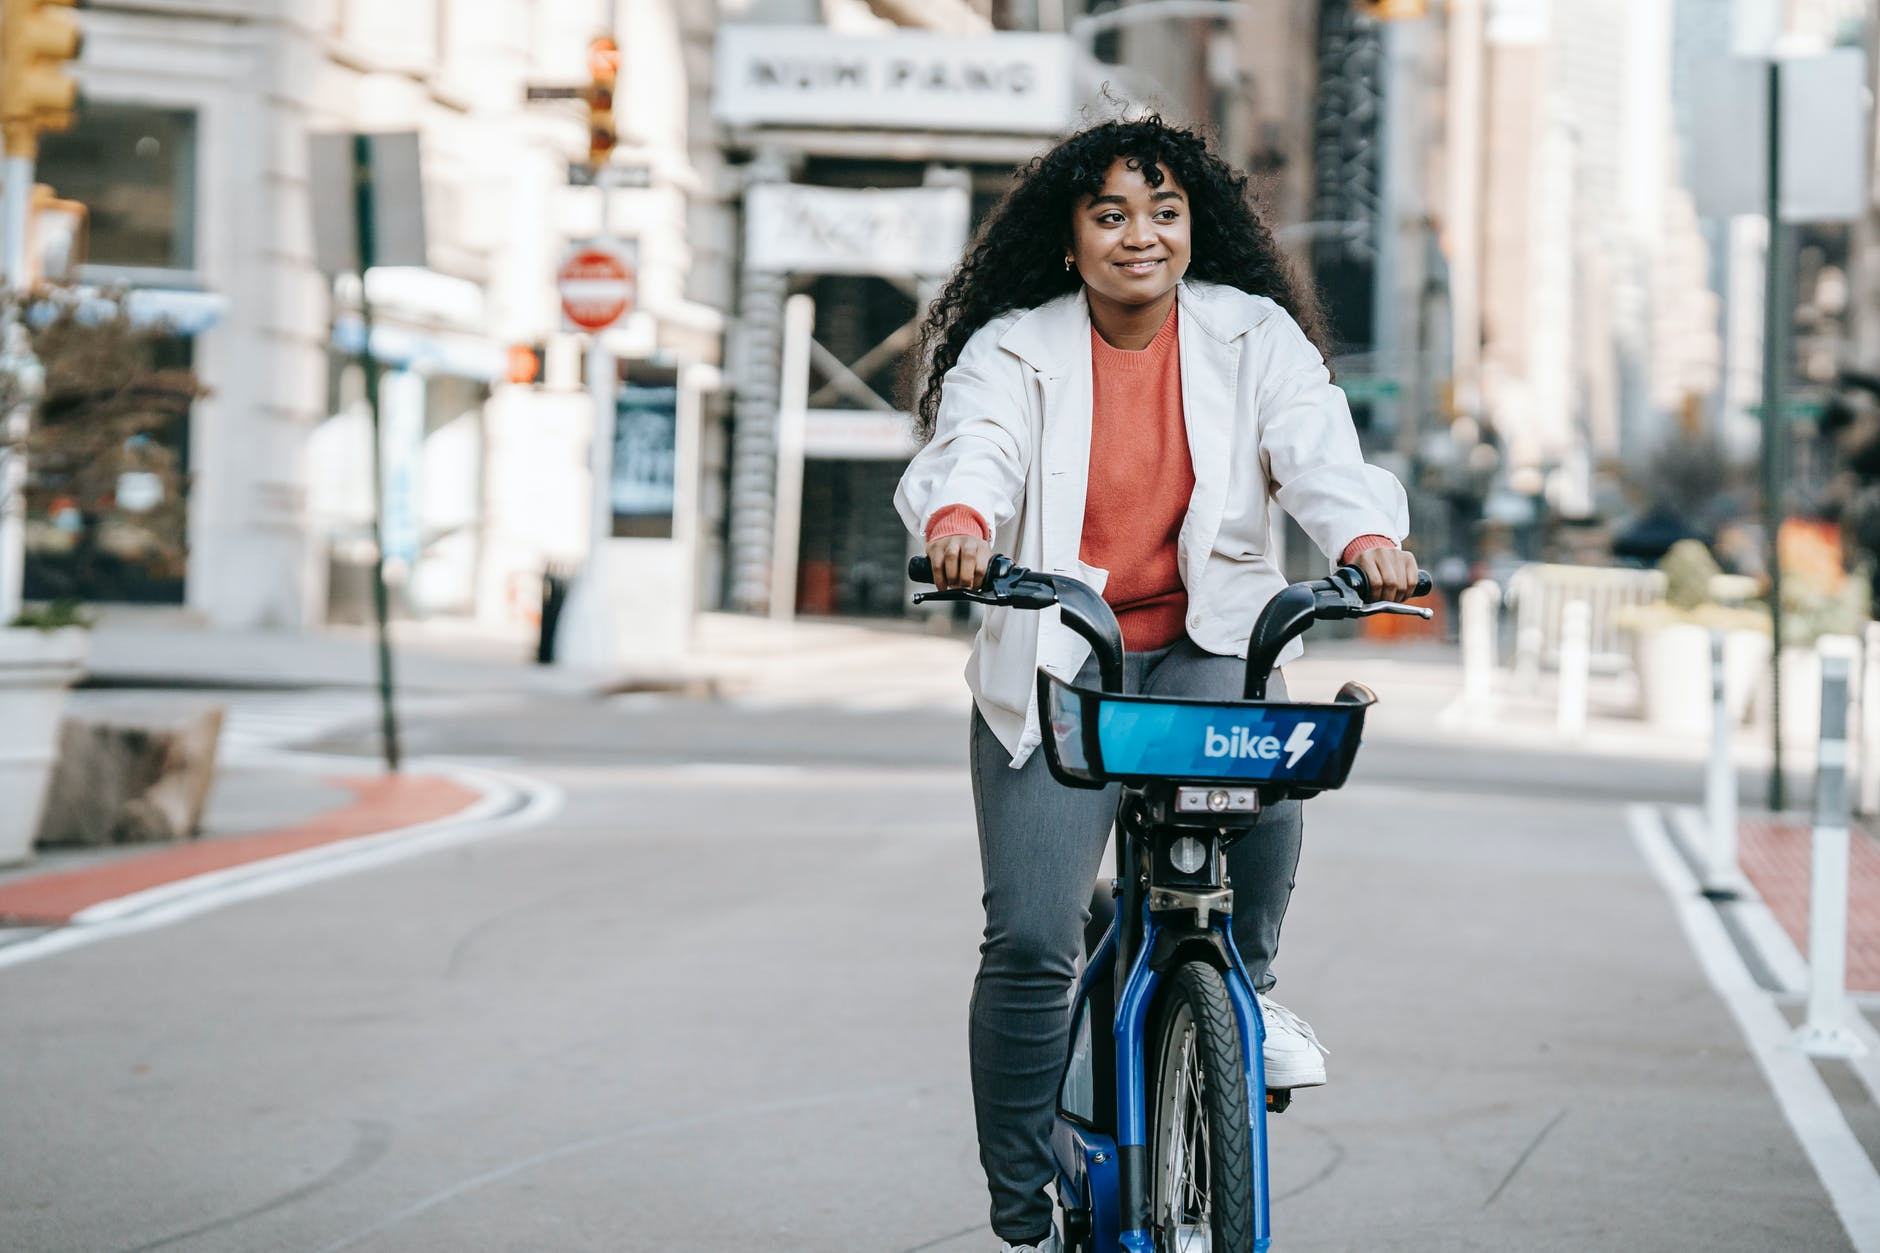 cheerful black woman riding bicycle on street